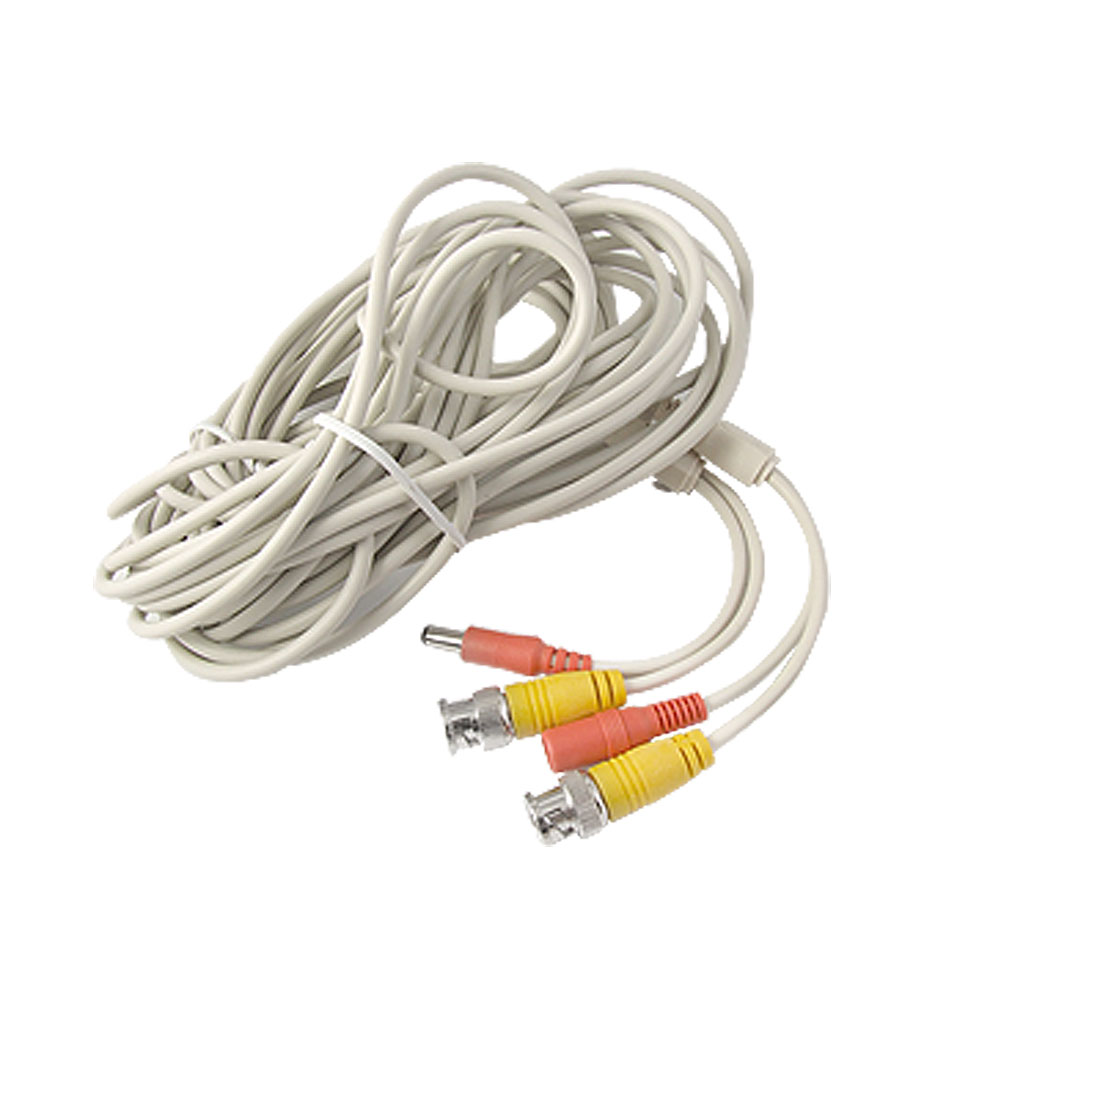 33FT 10M BNC DC Power Video Extension Cable for CCTV Surveillance System